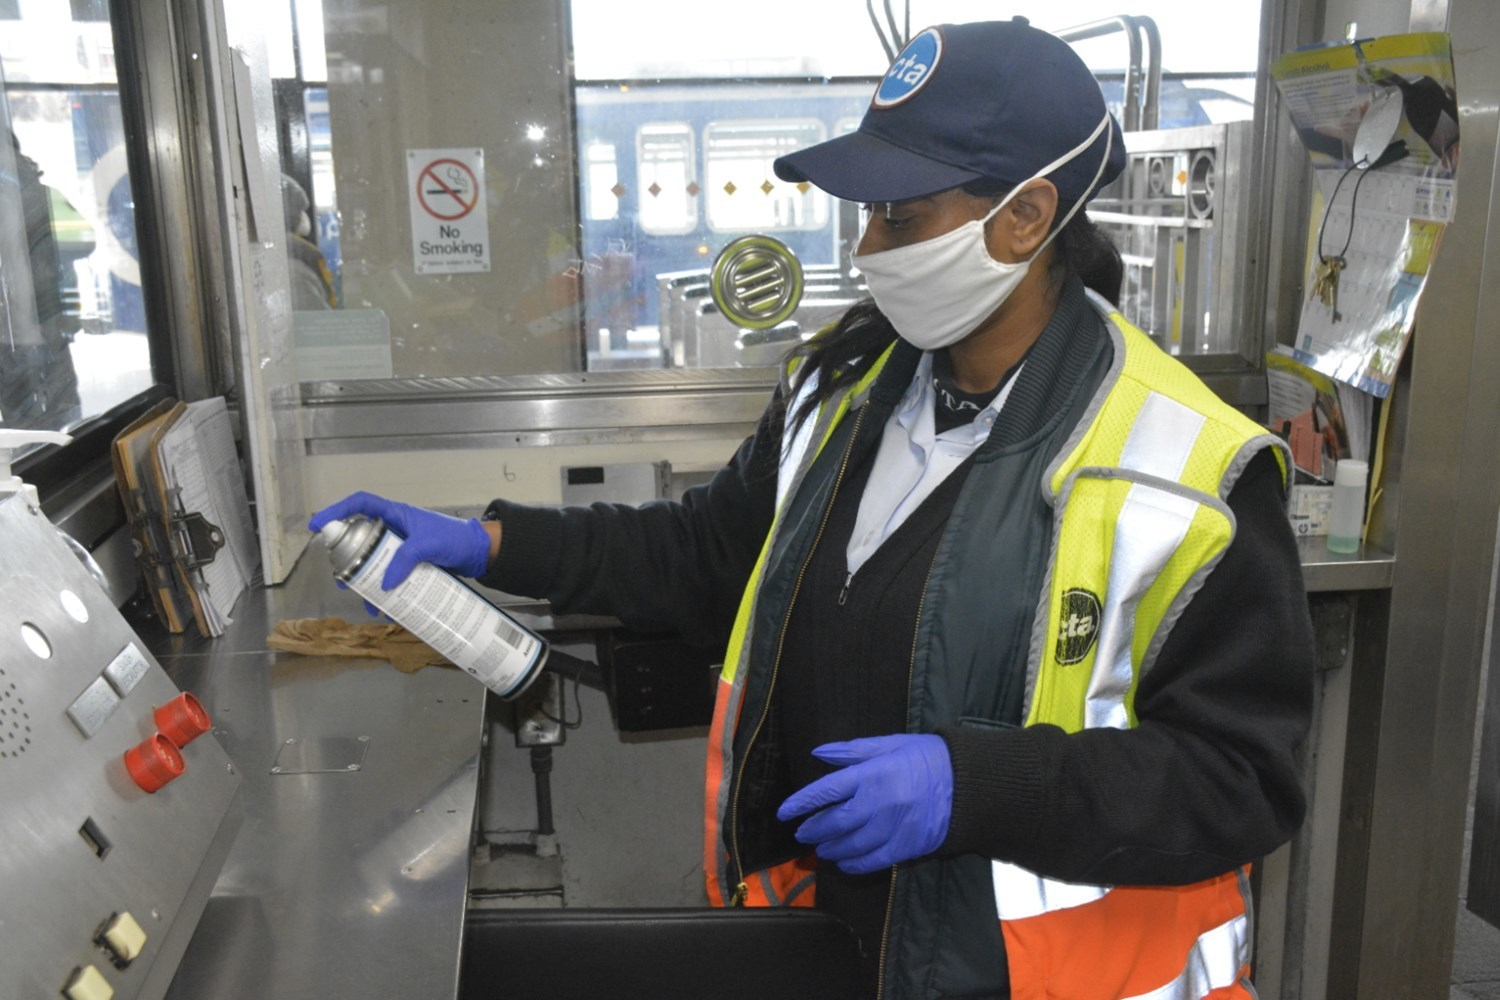 A rail station employee wears a mask and gloves as she disinfects her workspace at the start of her shift